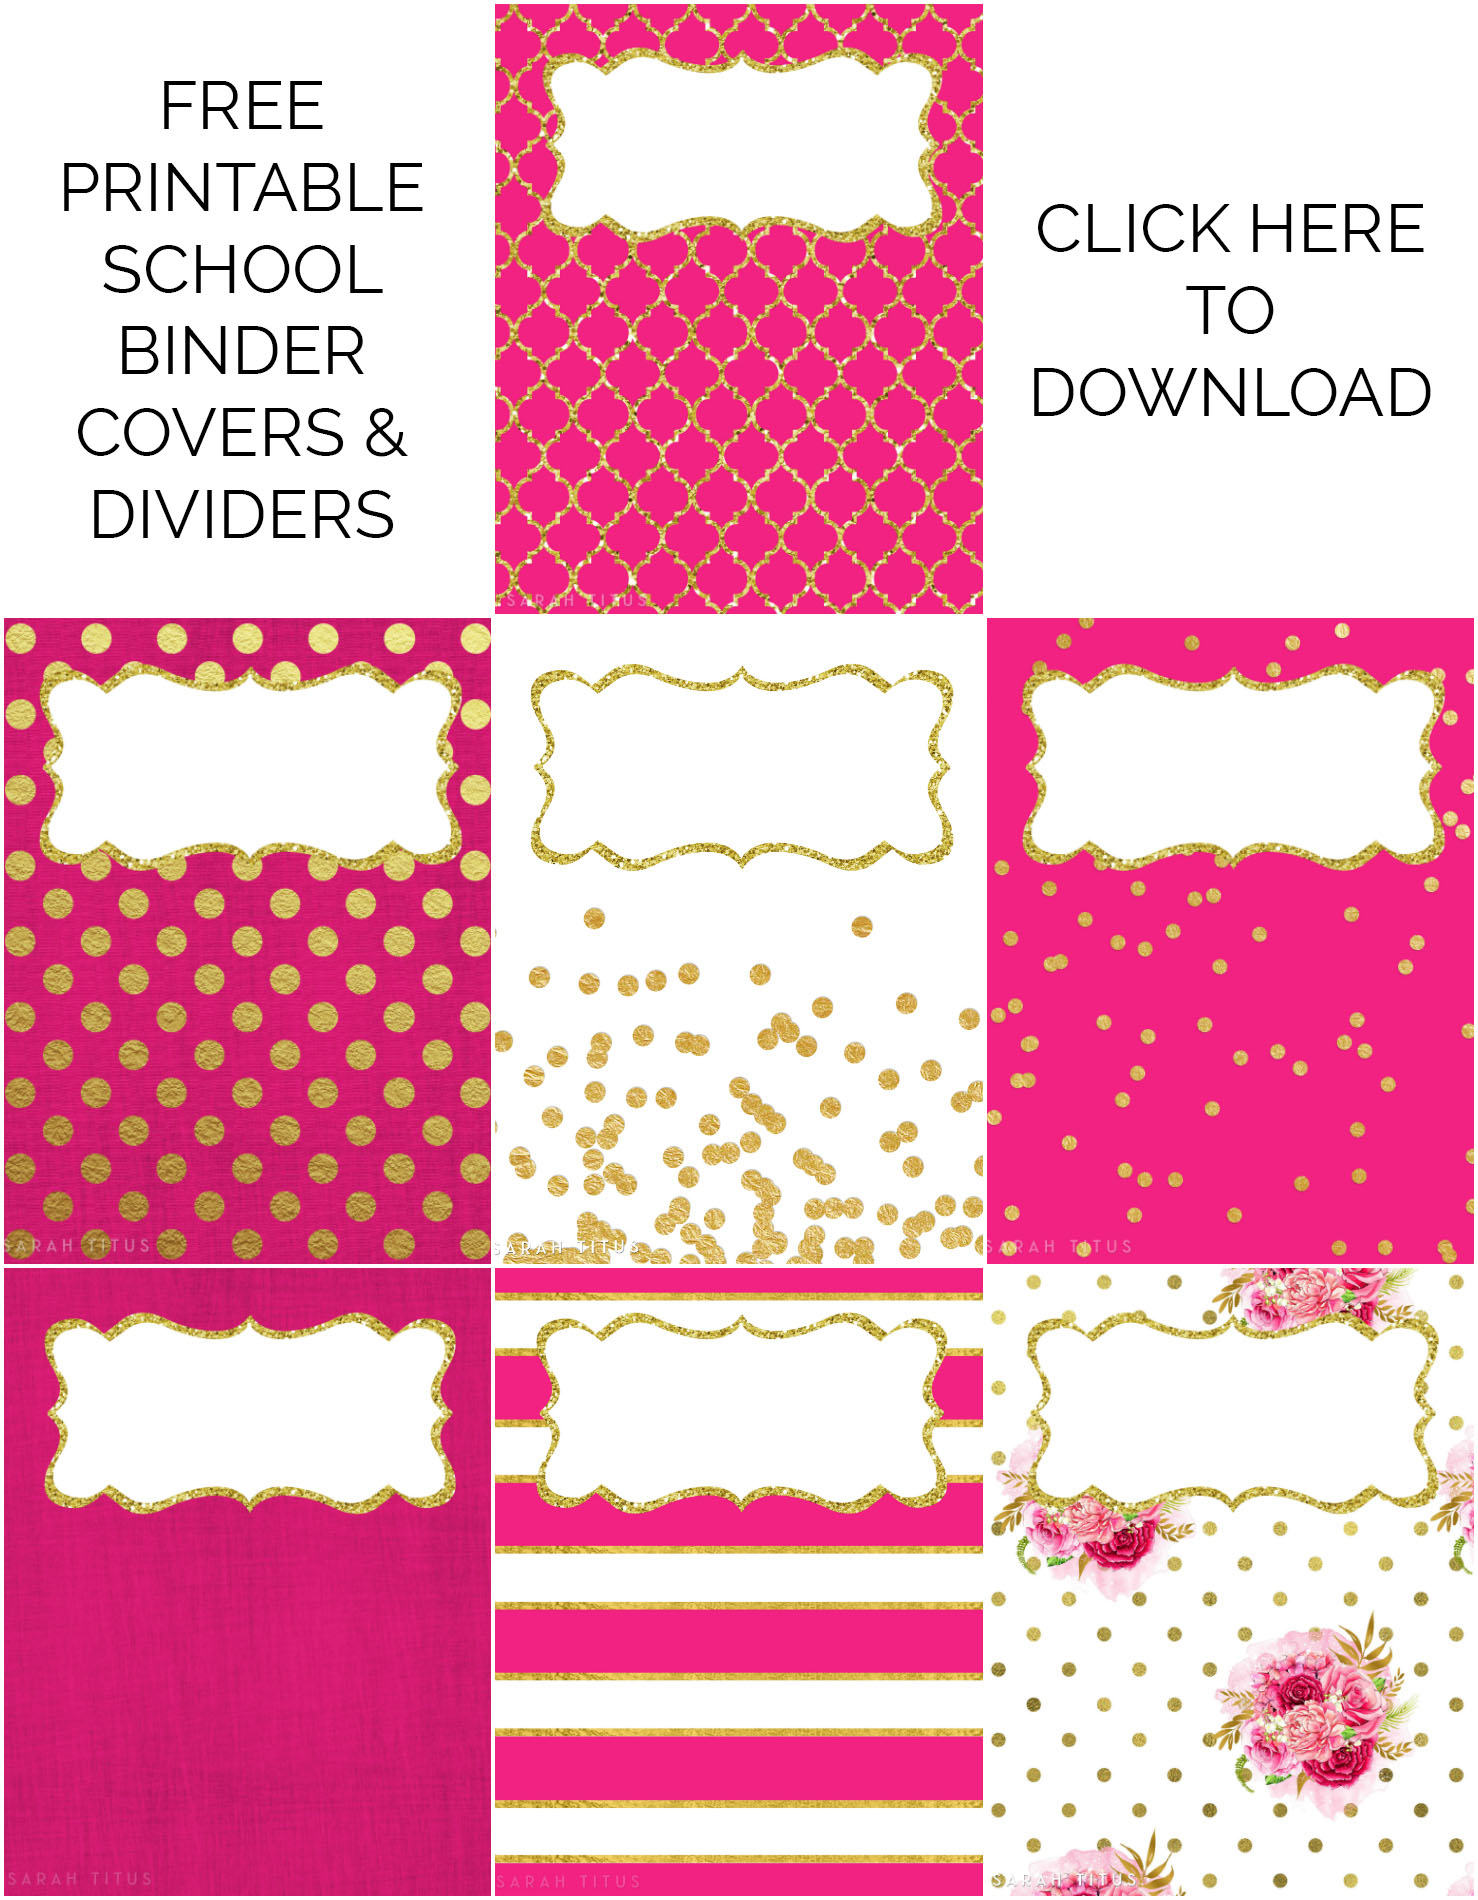 image relating to Binder Cover Printable referred to as Binder Handles / Dividers Totally free Printables - Sarah Titus